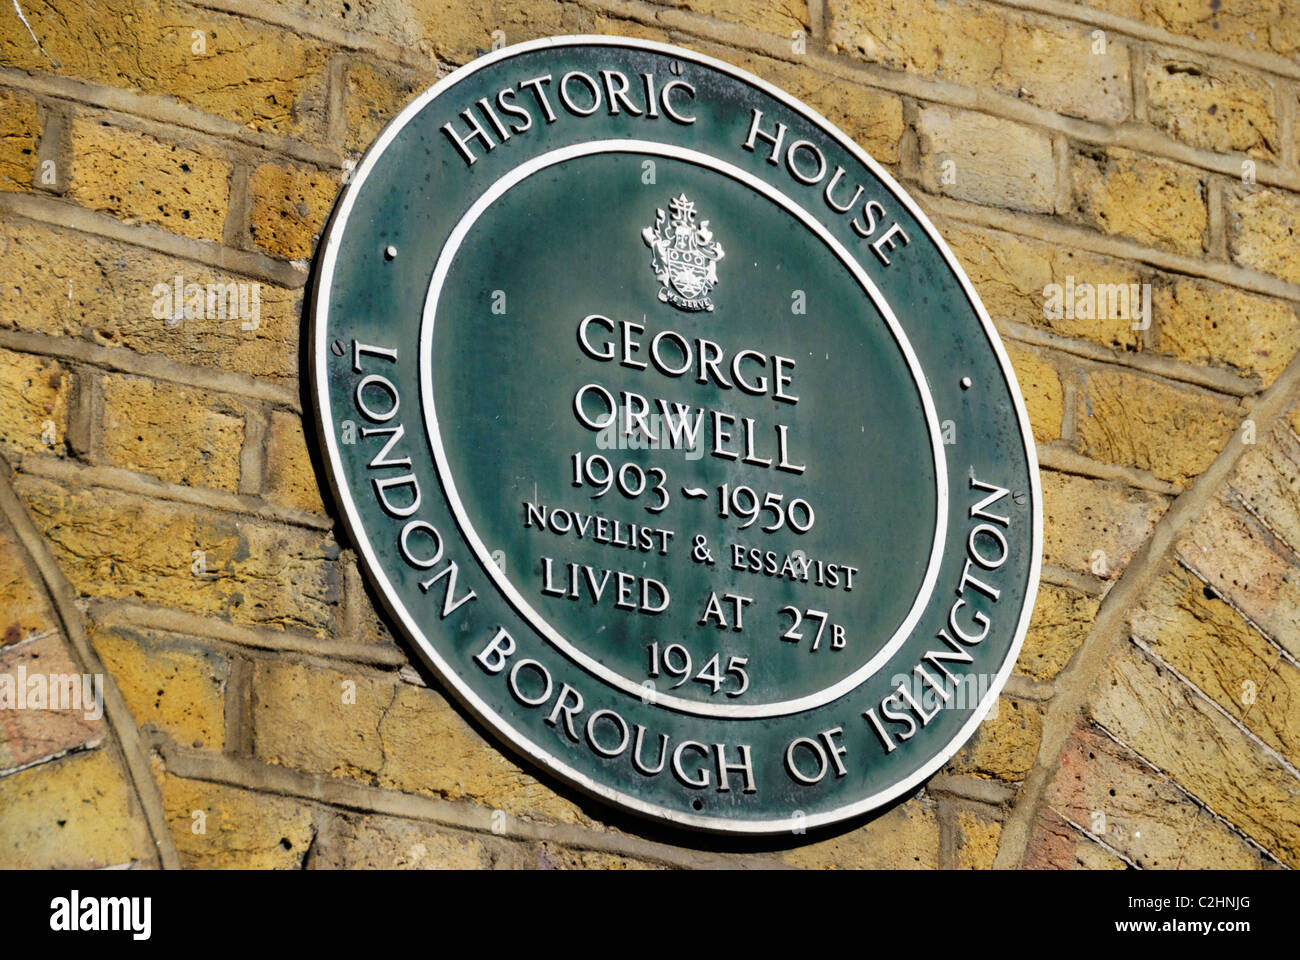 Green Historic House plaque marking the site of the former home of George Orwell, Canonbury Square, London - Stock Image